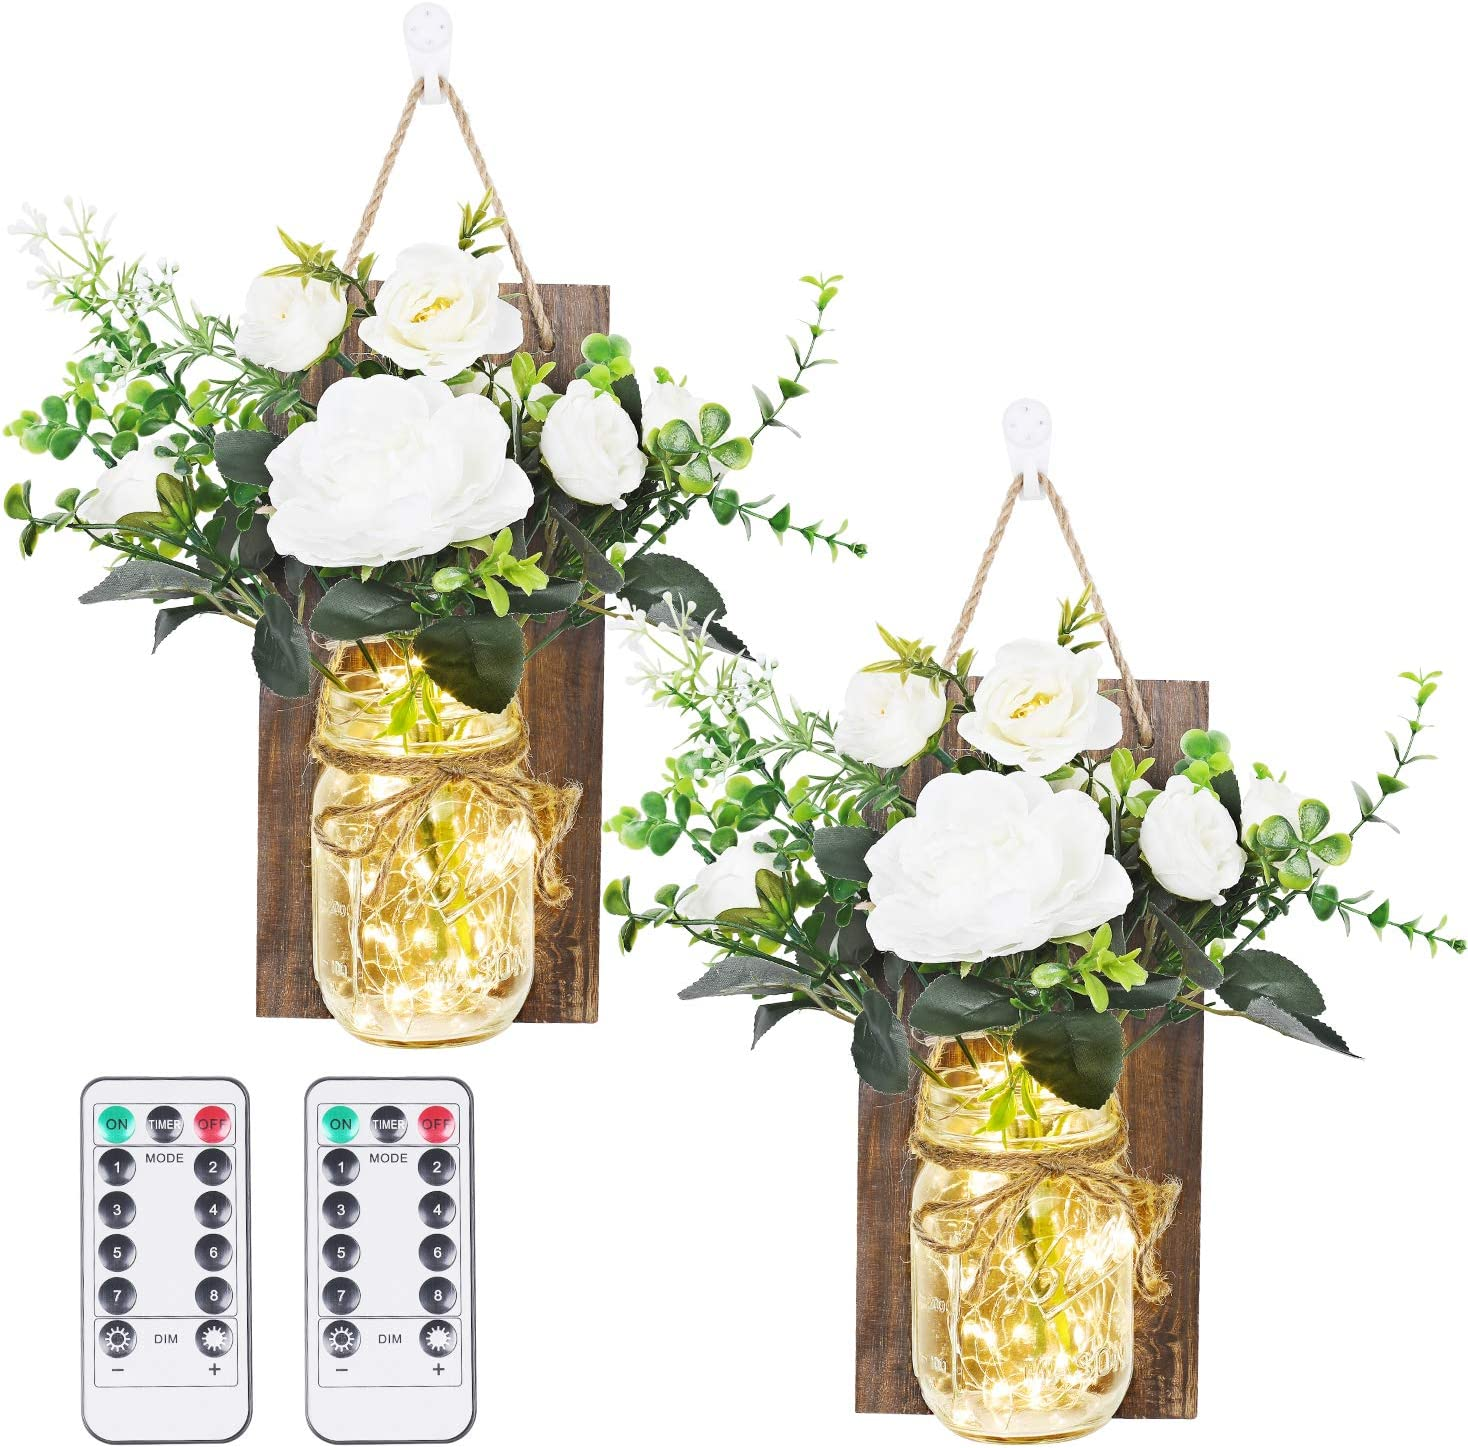 Anpro Rustic Wall Sconces - Mason Jars Sconce, Rustic Home Decor,Wrought Iron Hooks, Silk Hydrangea and LED Strip Lights Design 6 Hour Timer Home Decoration (Set of 2)